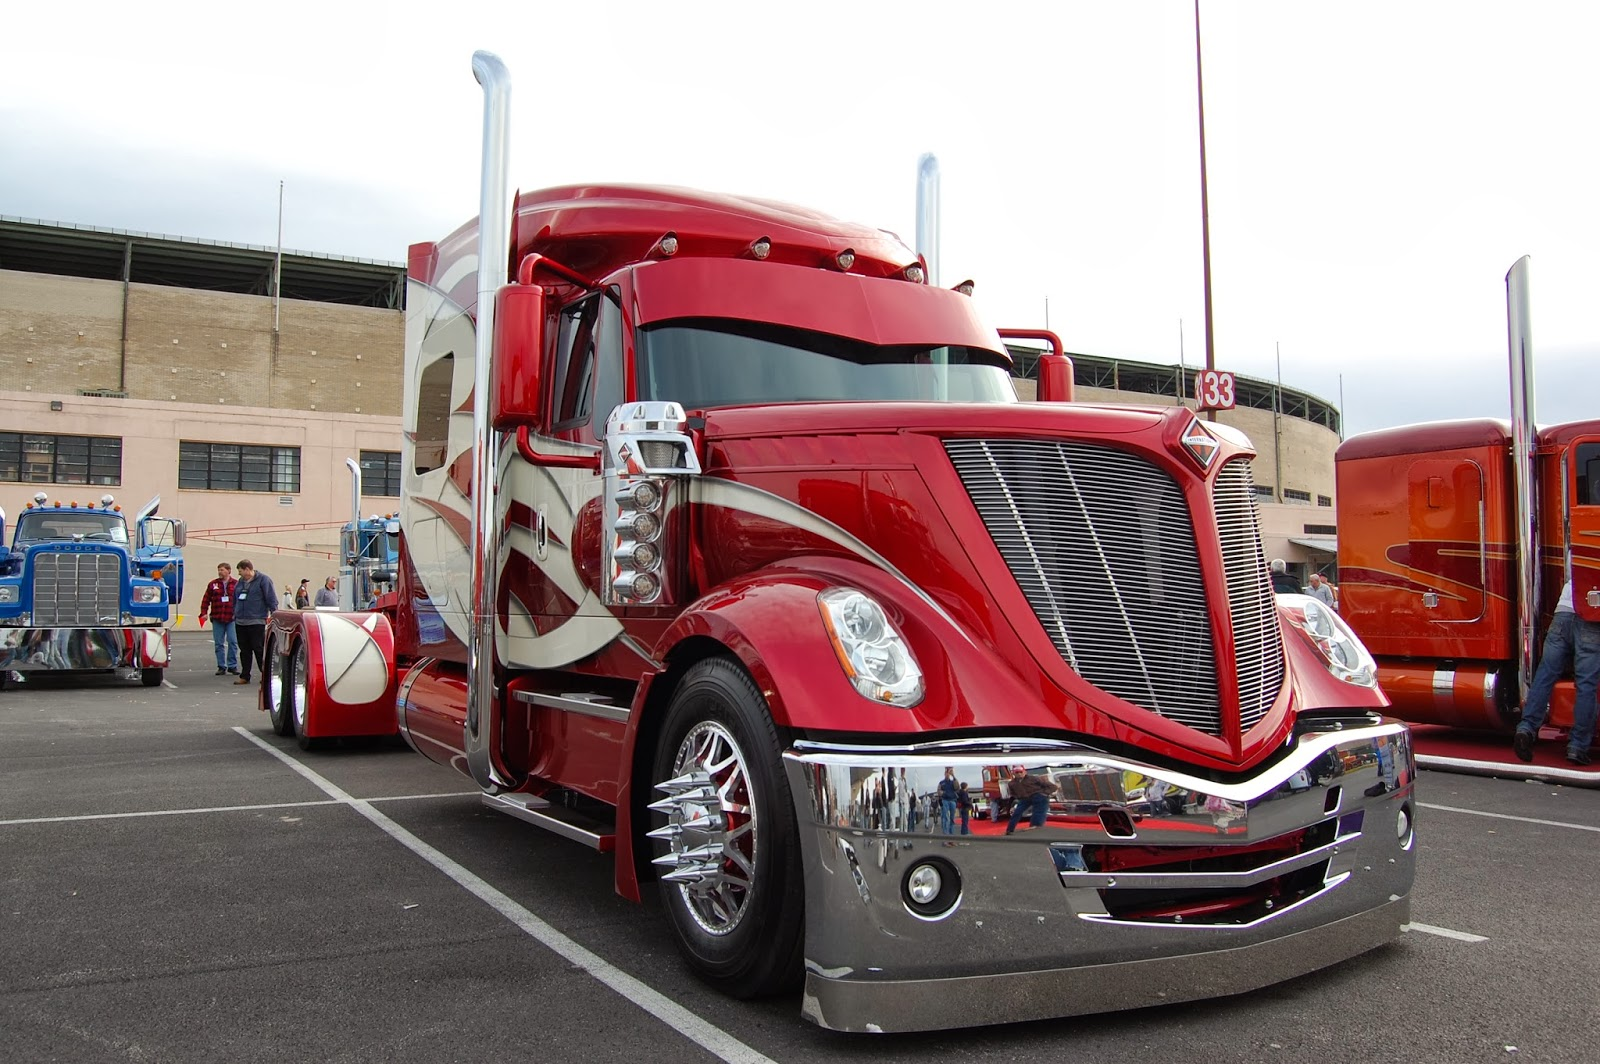 Benz Red Color >> Informative BLOG: Future trucks